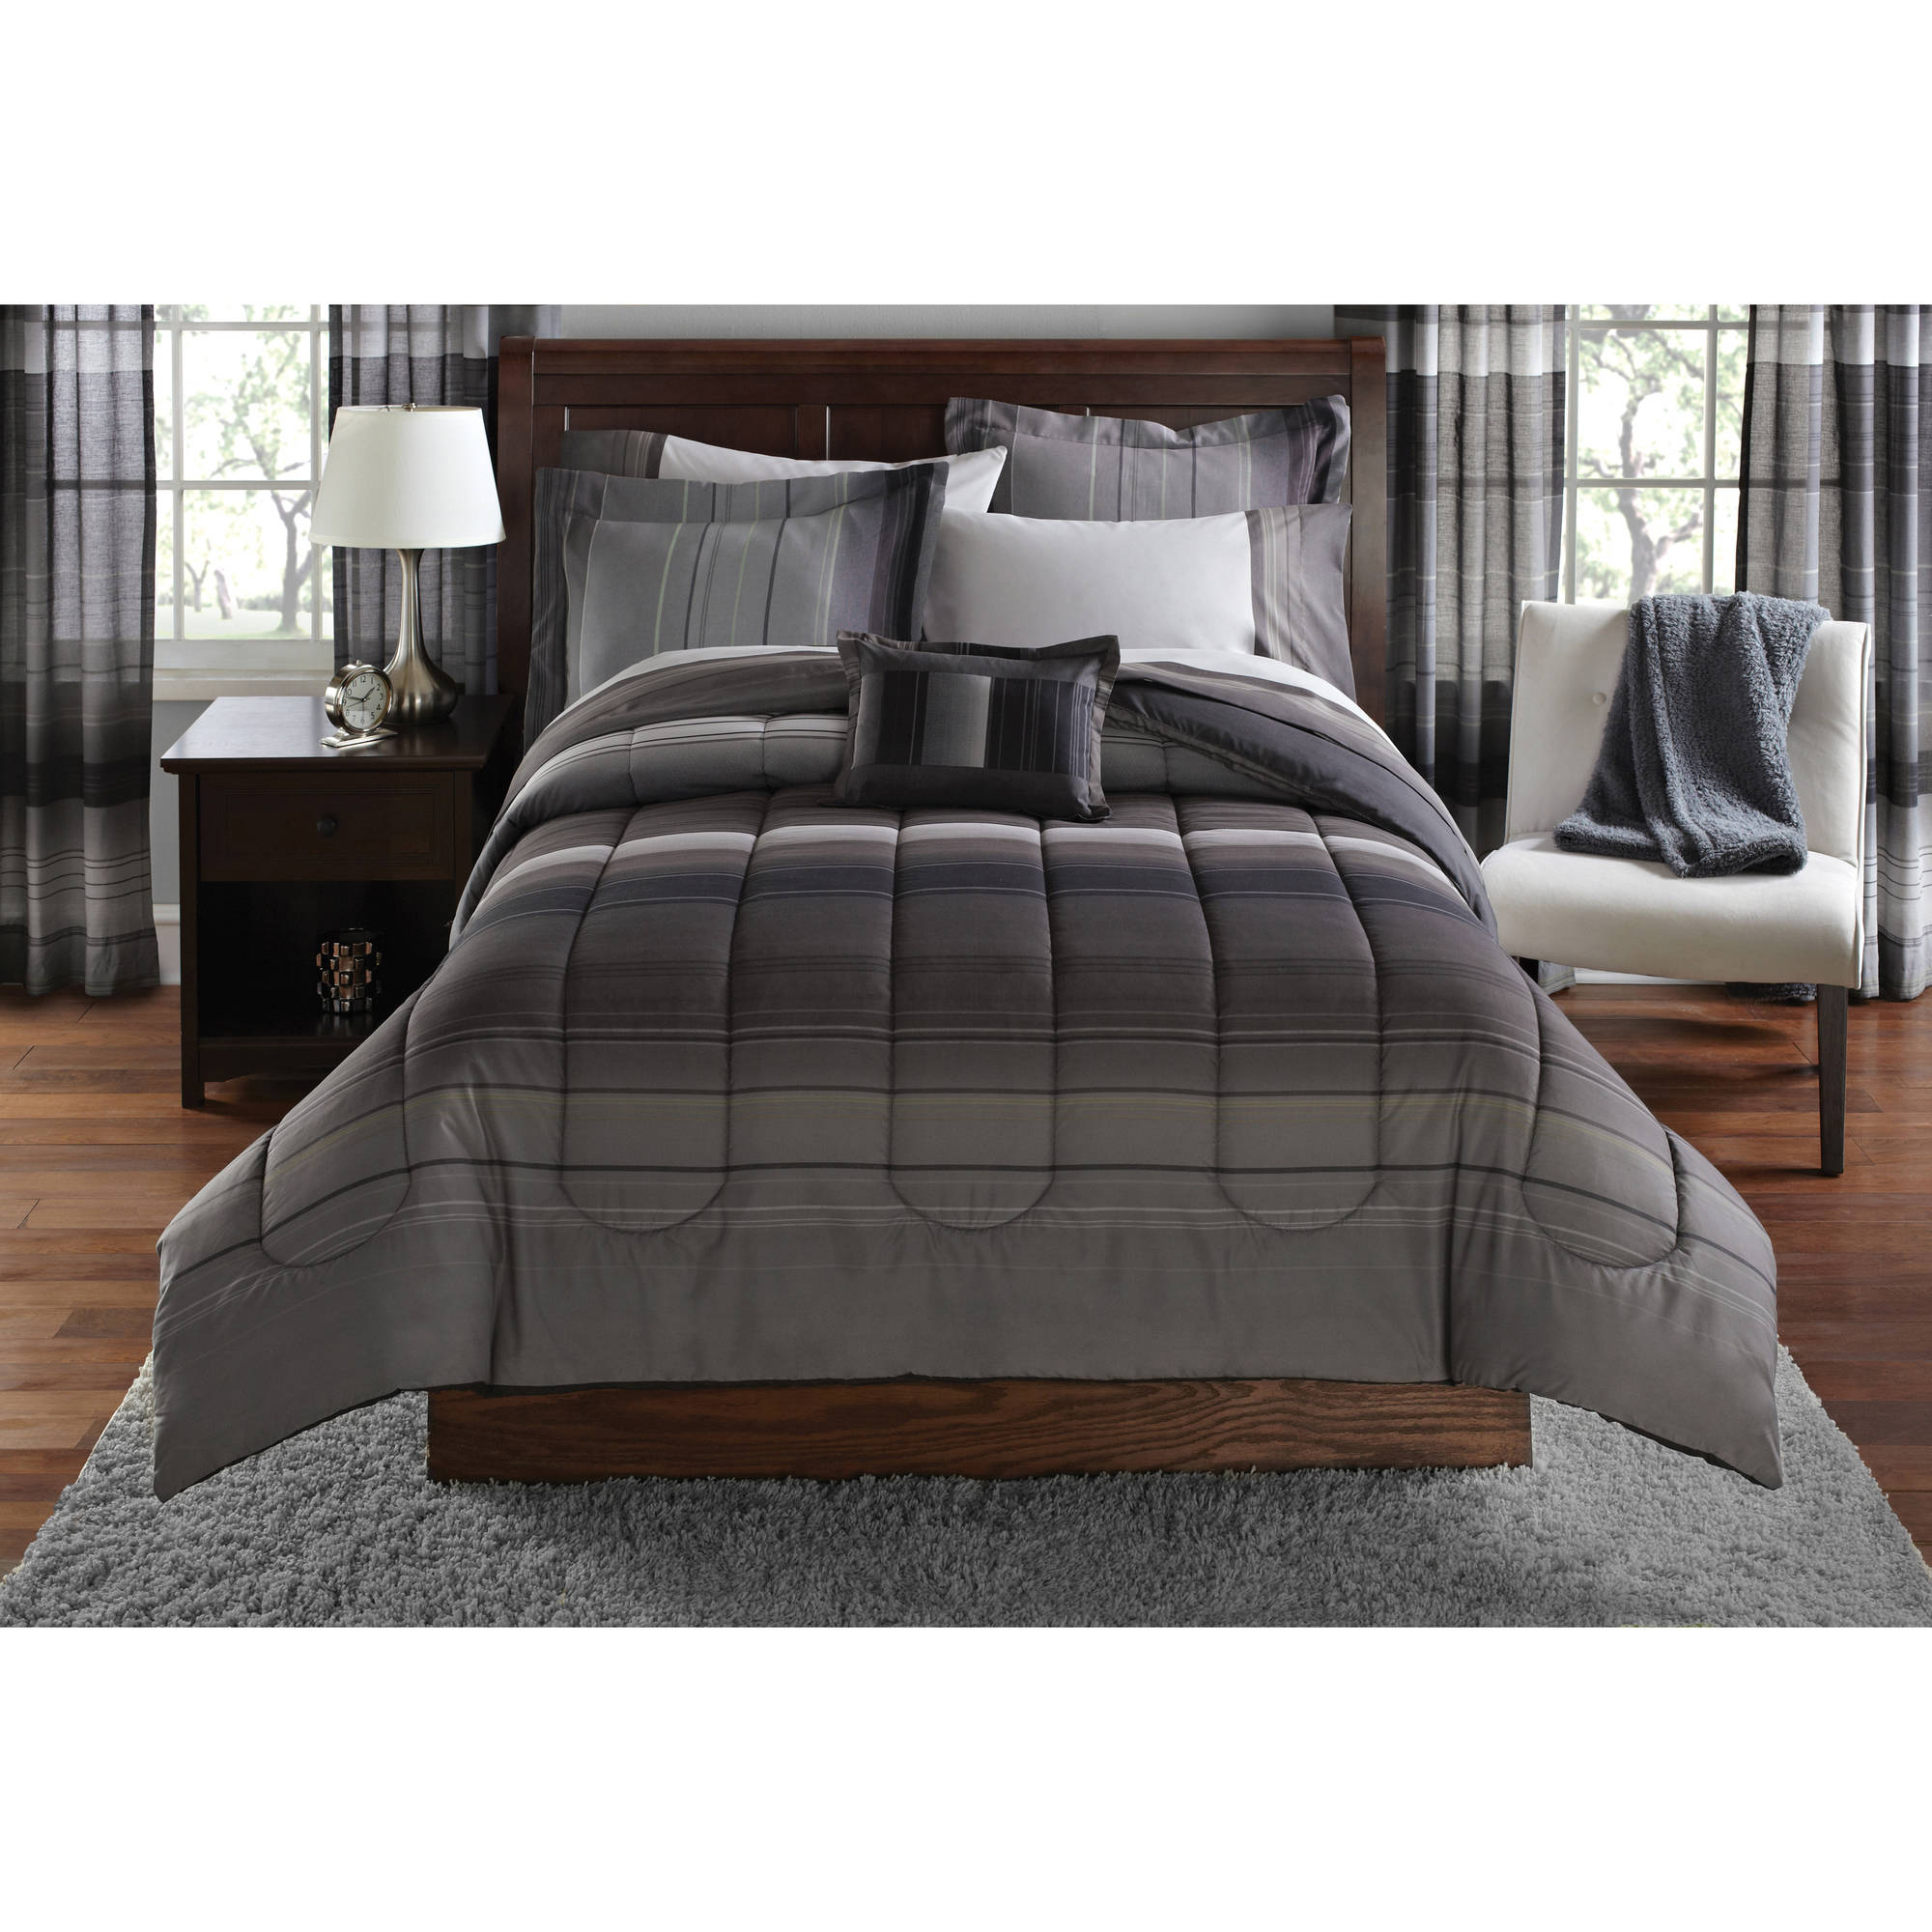 Mainstays Ombre Bed in a Bag Bedding Set with Decorative Pillow